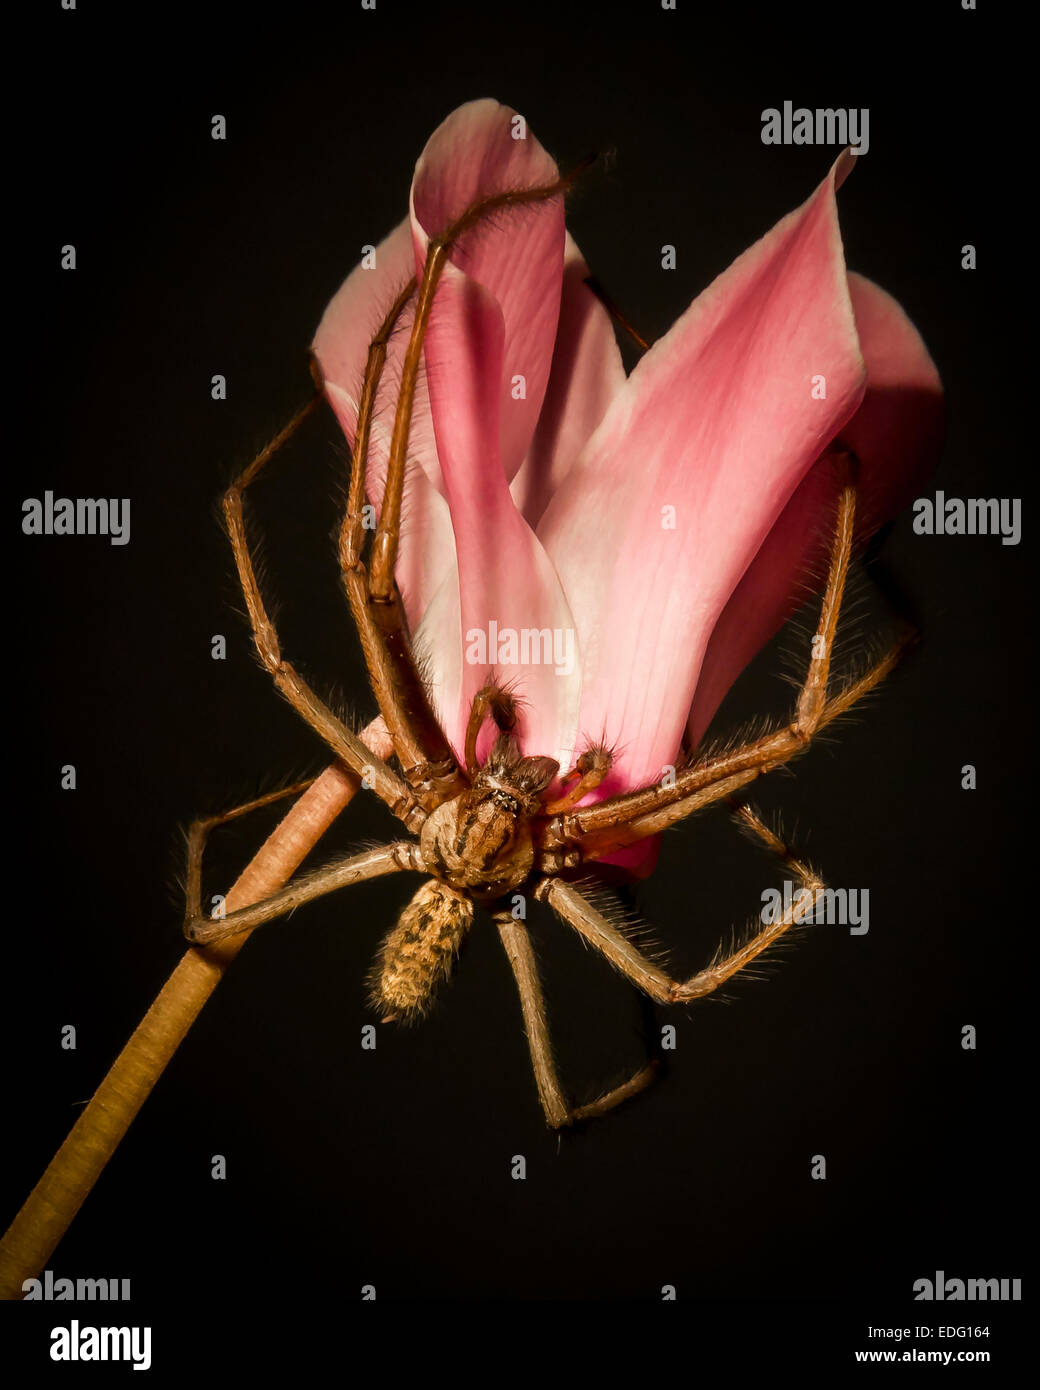 Spider on flower - Stock Image